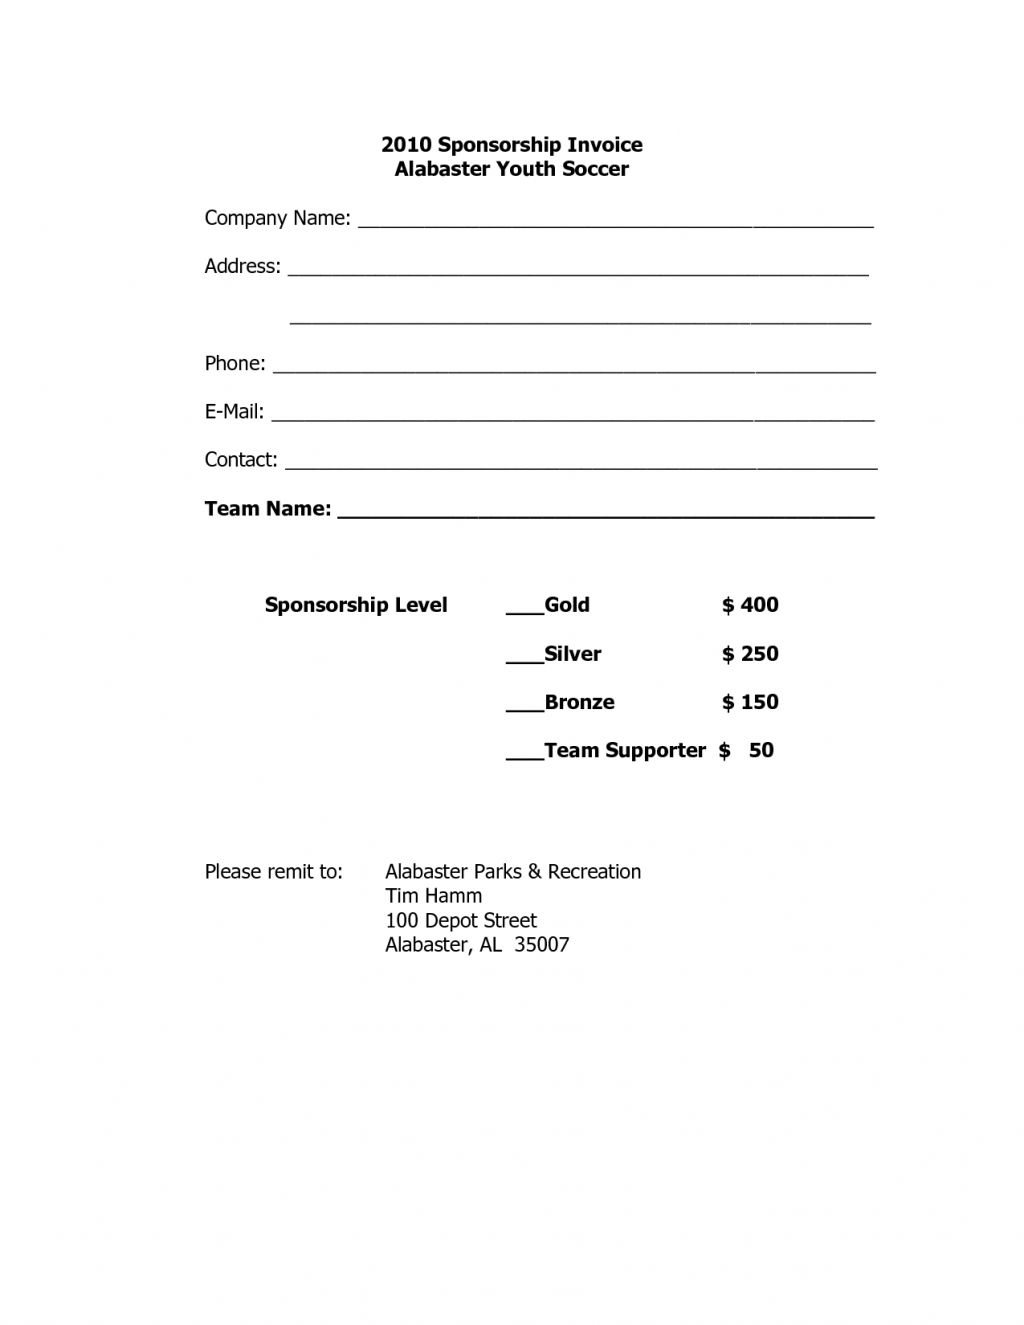 printable invoice template | your sourche for printable invoice